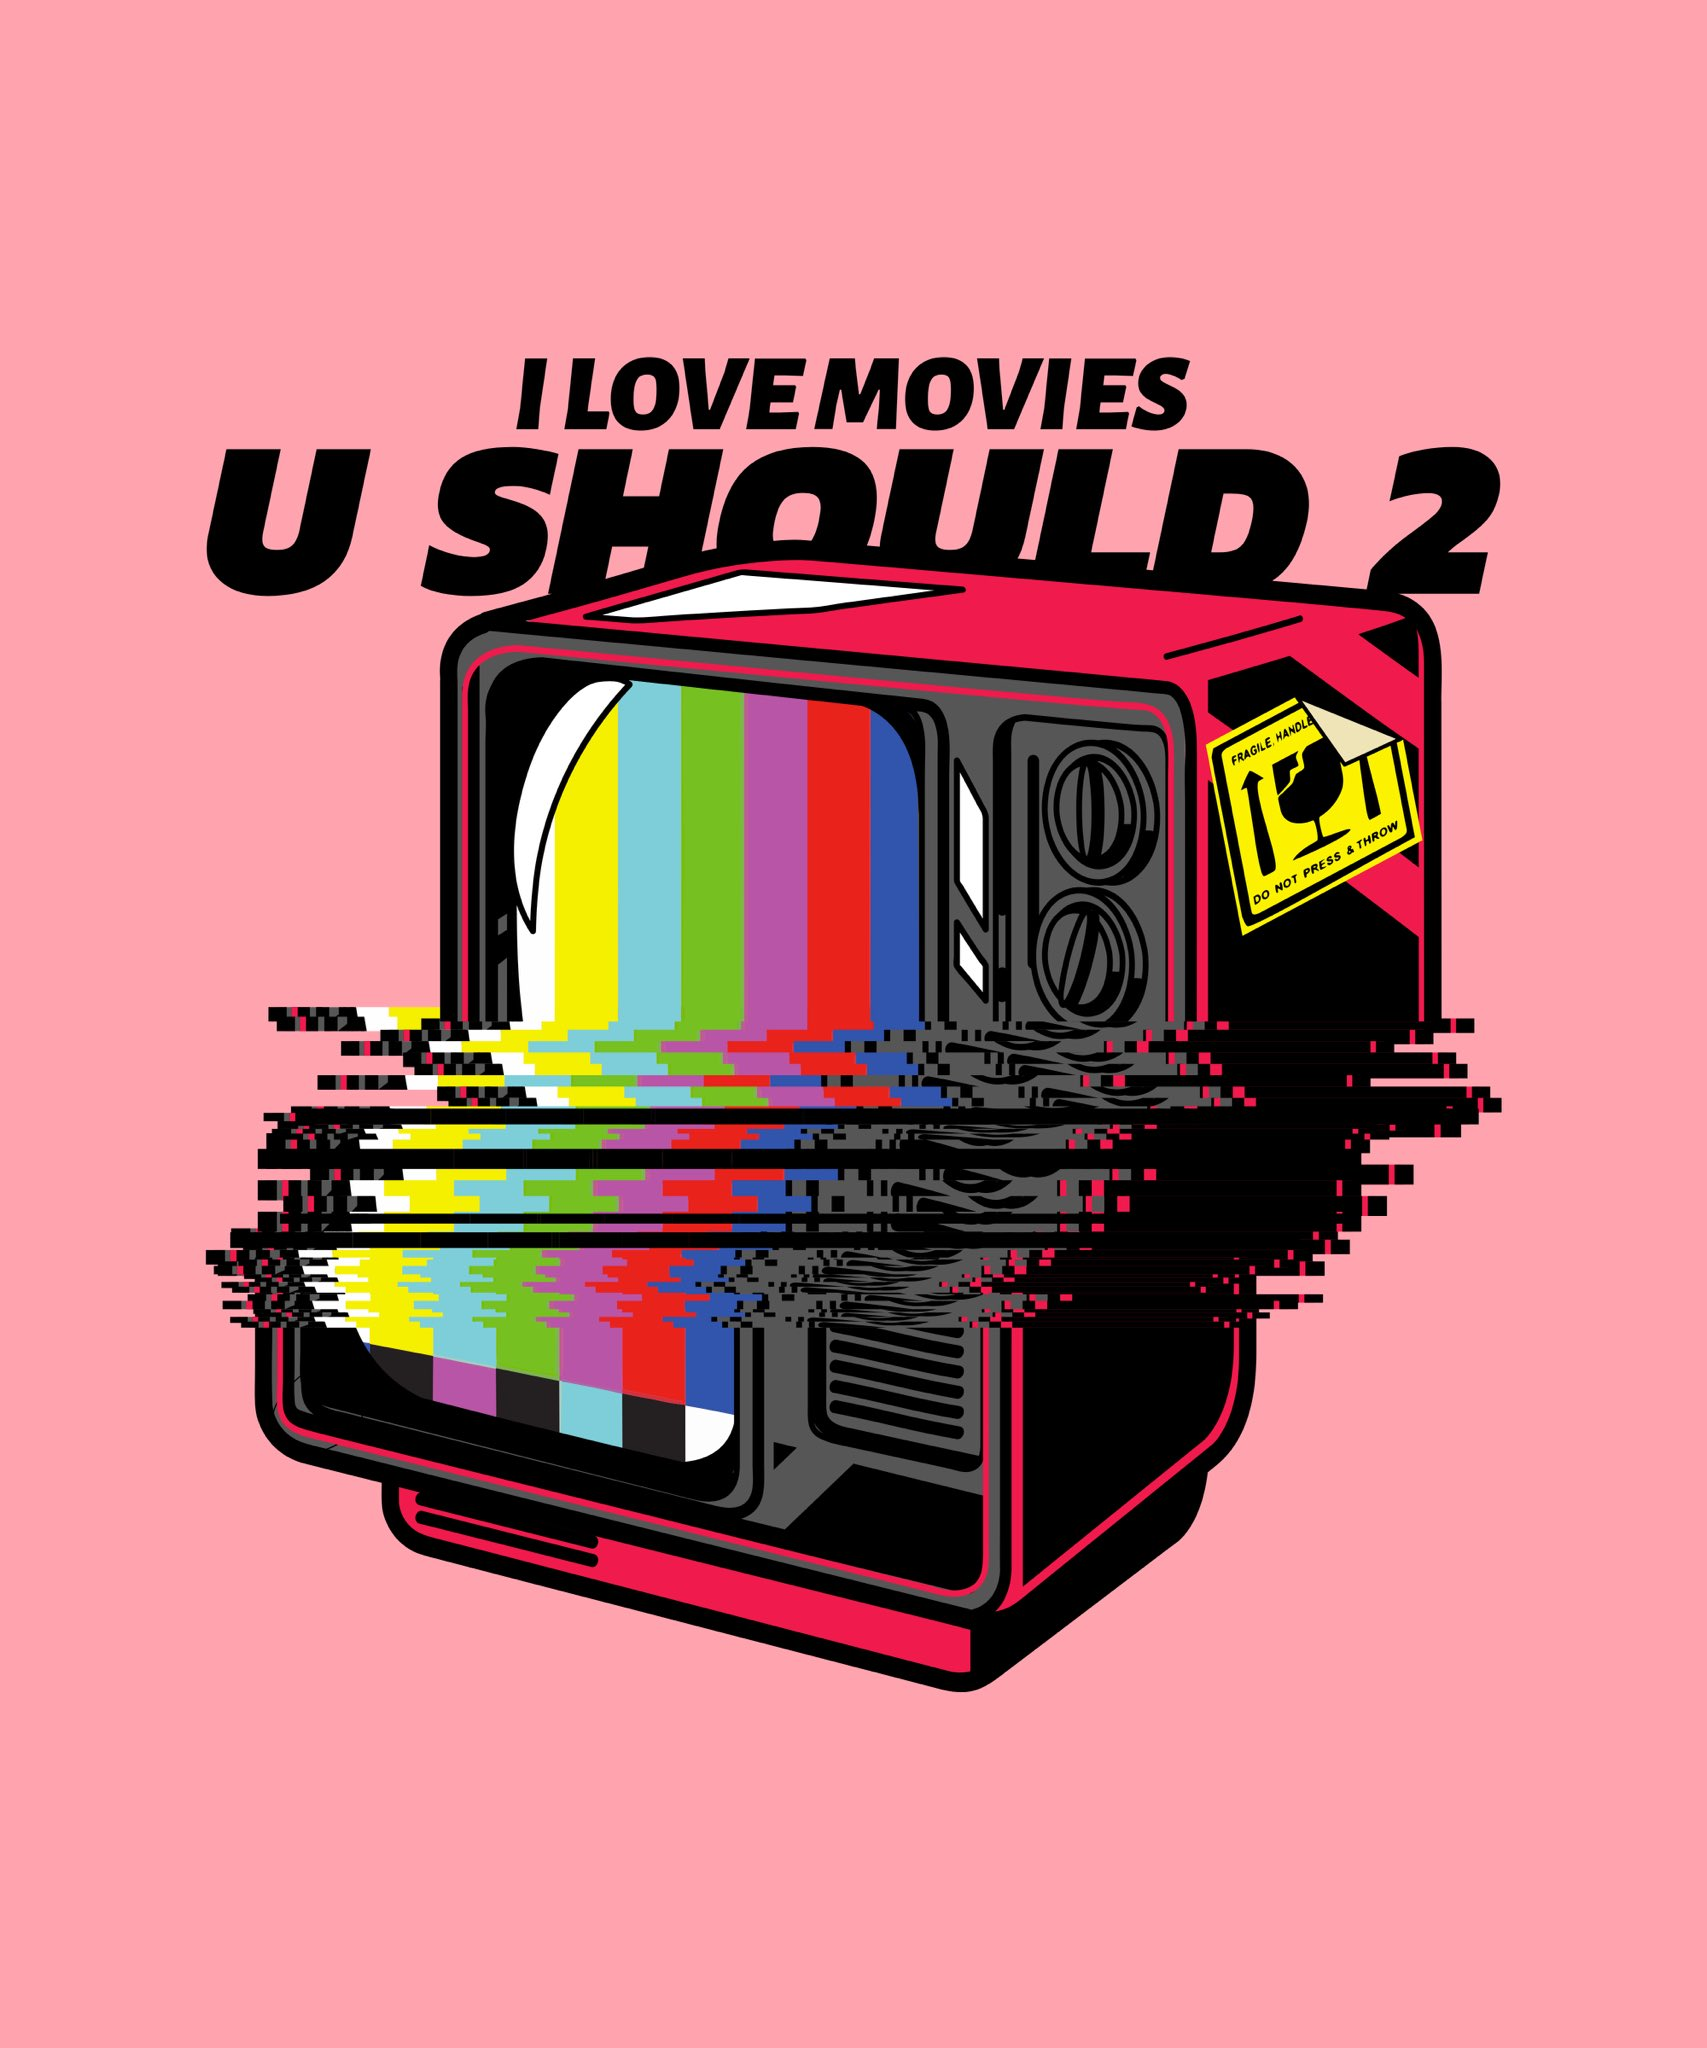 Interview With Evan Of I Love Movies U Should 2 Podcast Another One For The Fire